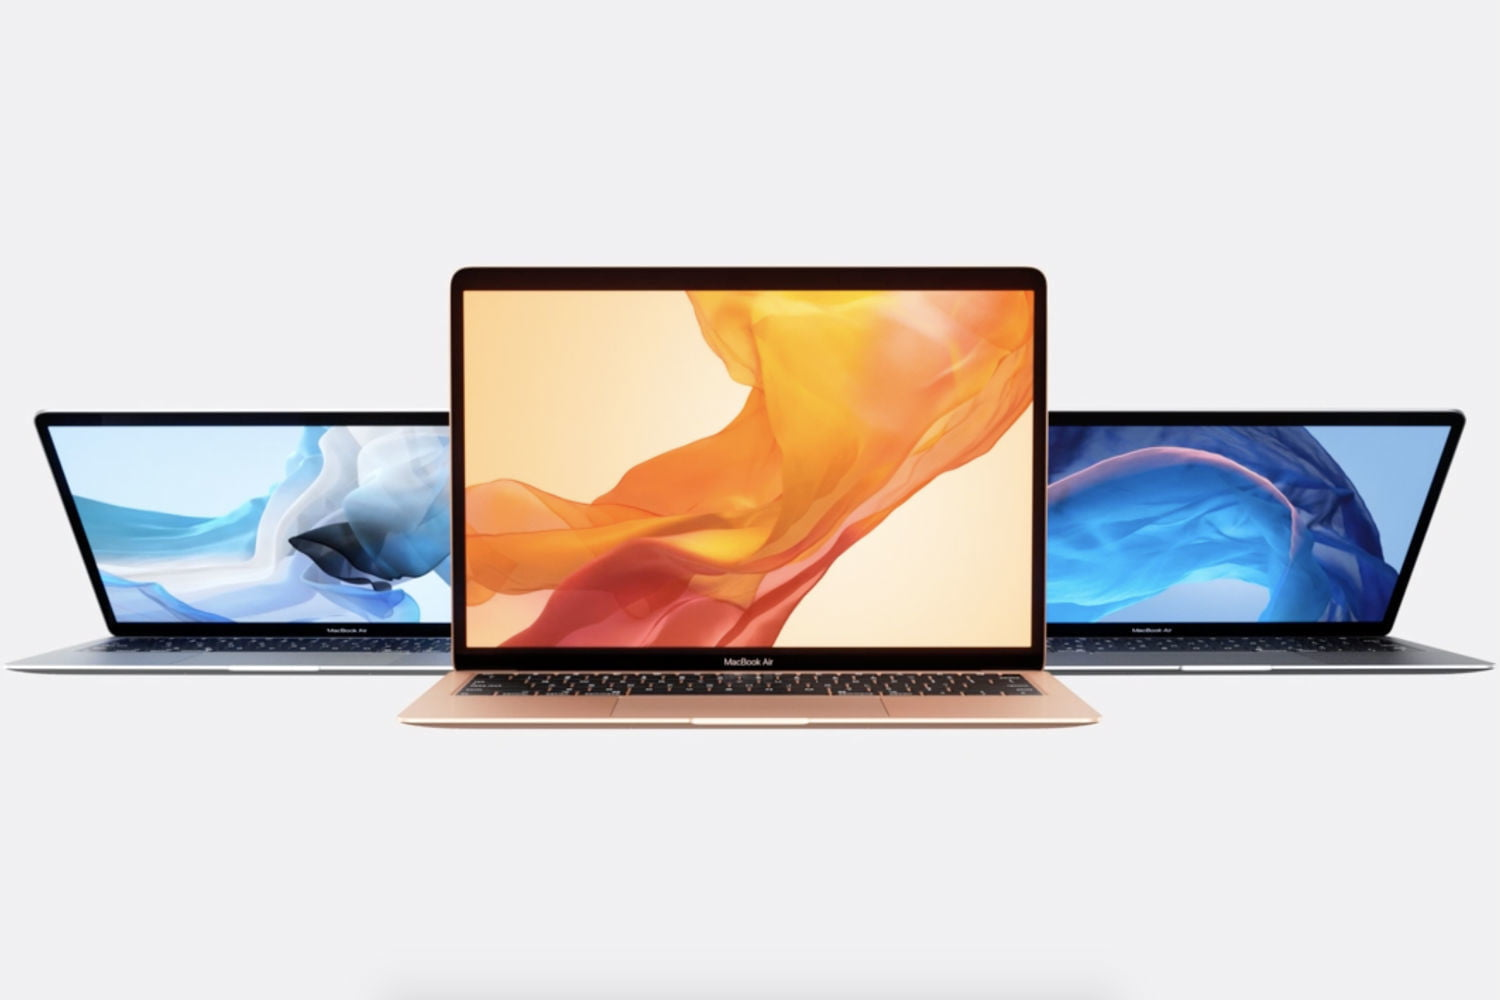 Macbook Air Vs Macbook Pro Spec Comparison Digital Trends